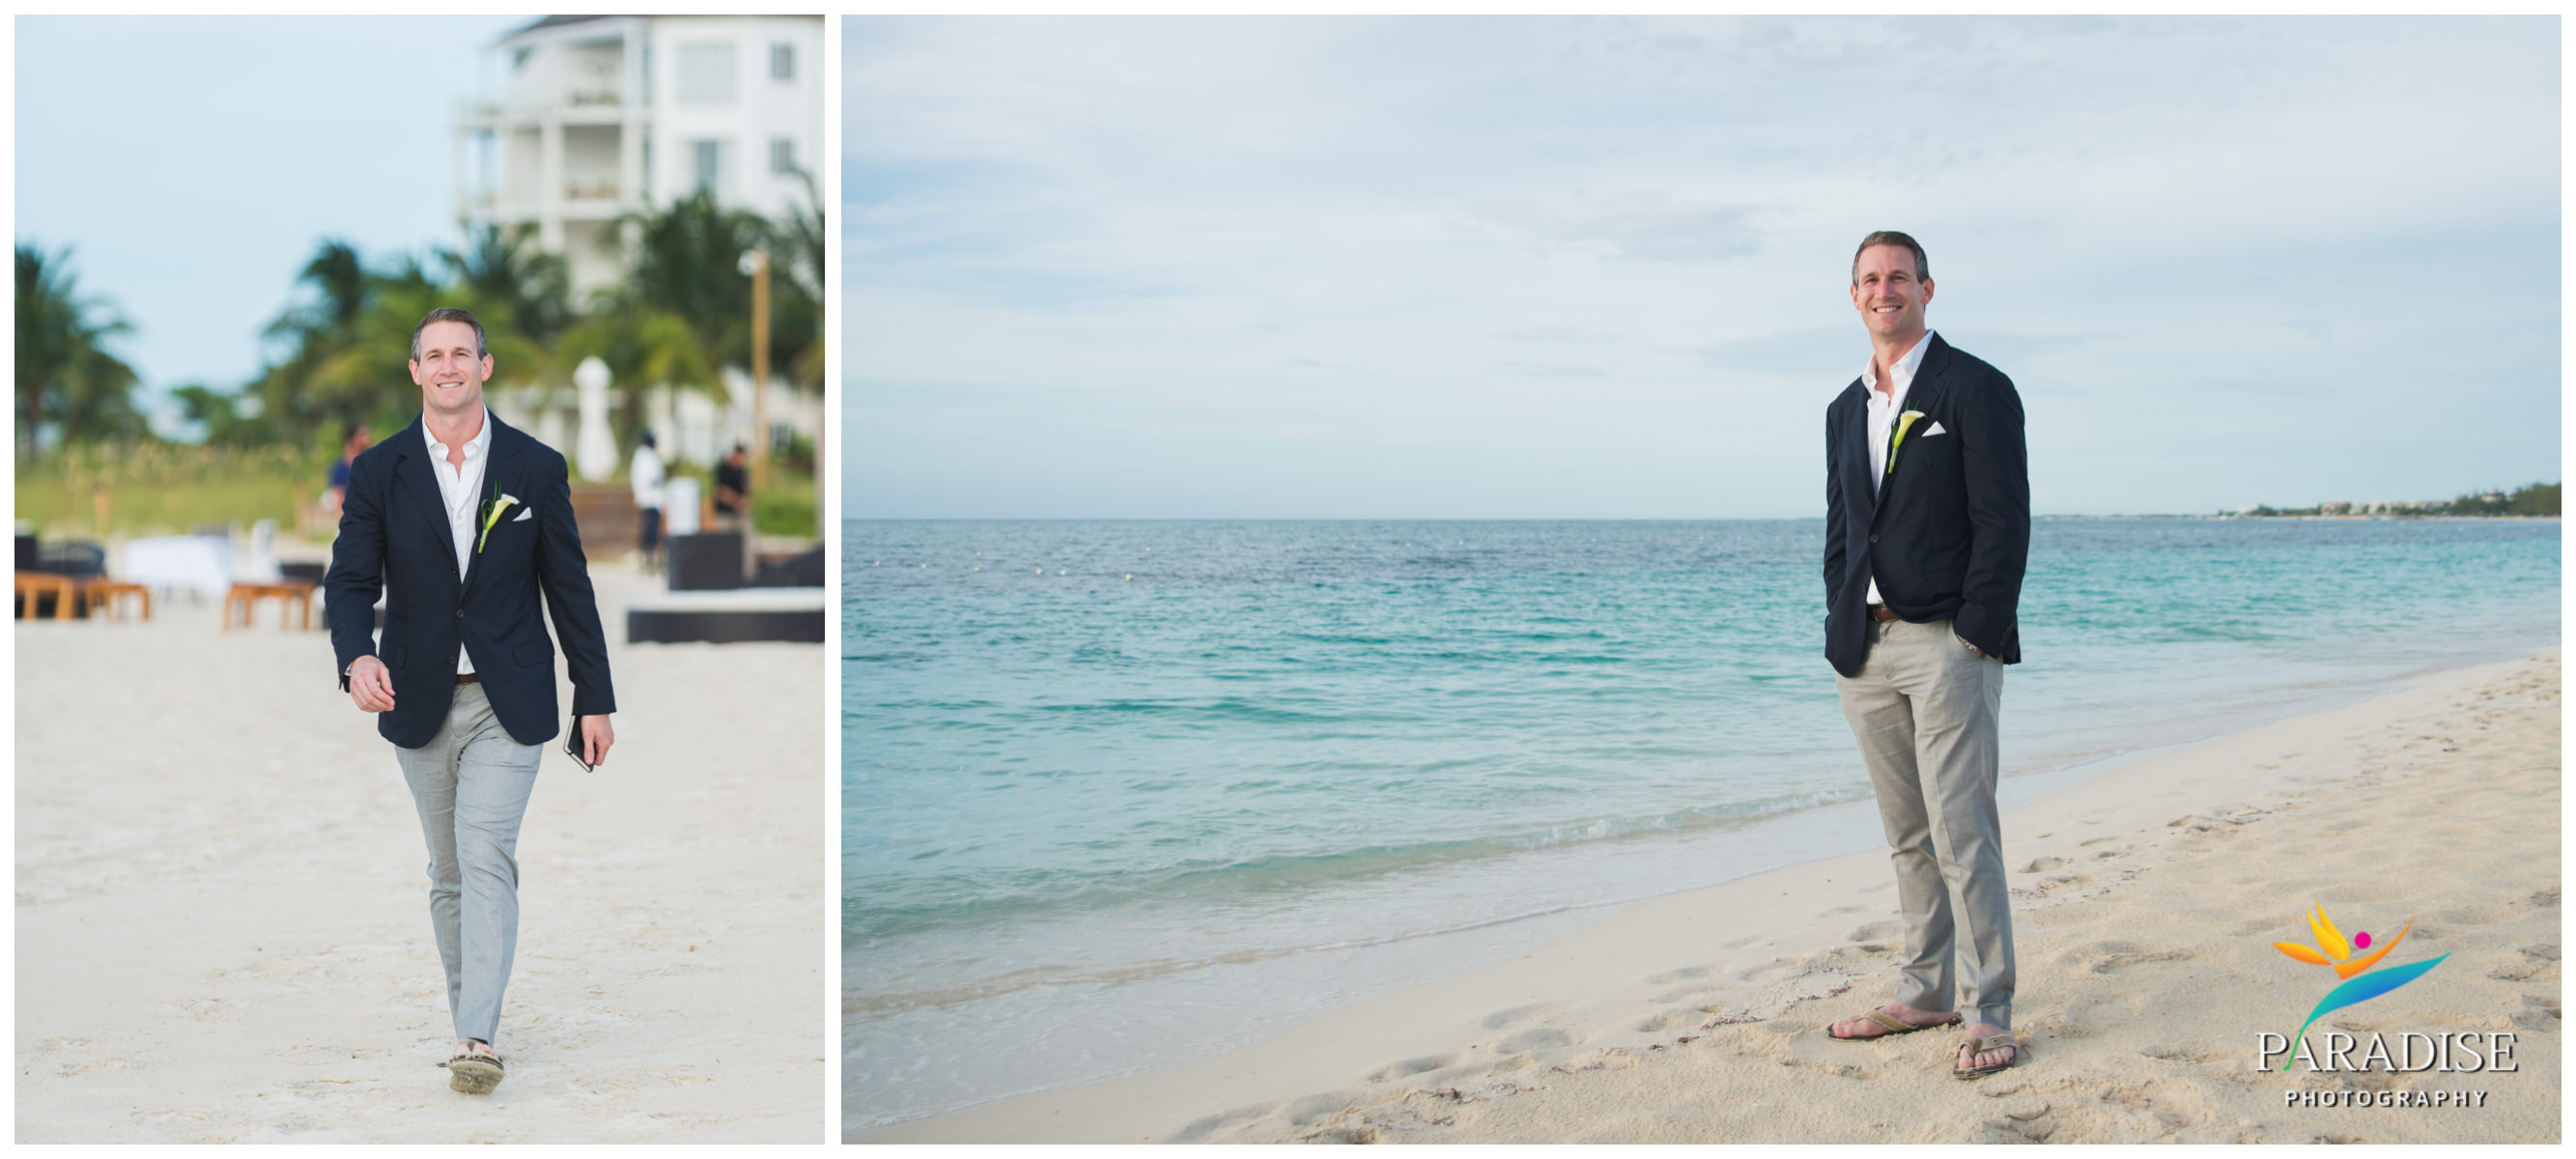 004-turks-and-caicos-destination-wedding-beach-caribbean-photography-photographer-pic-pictures-bride-groom-grace-bay-gansevoort-elopement